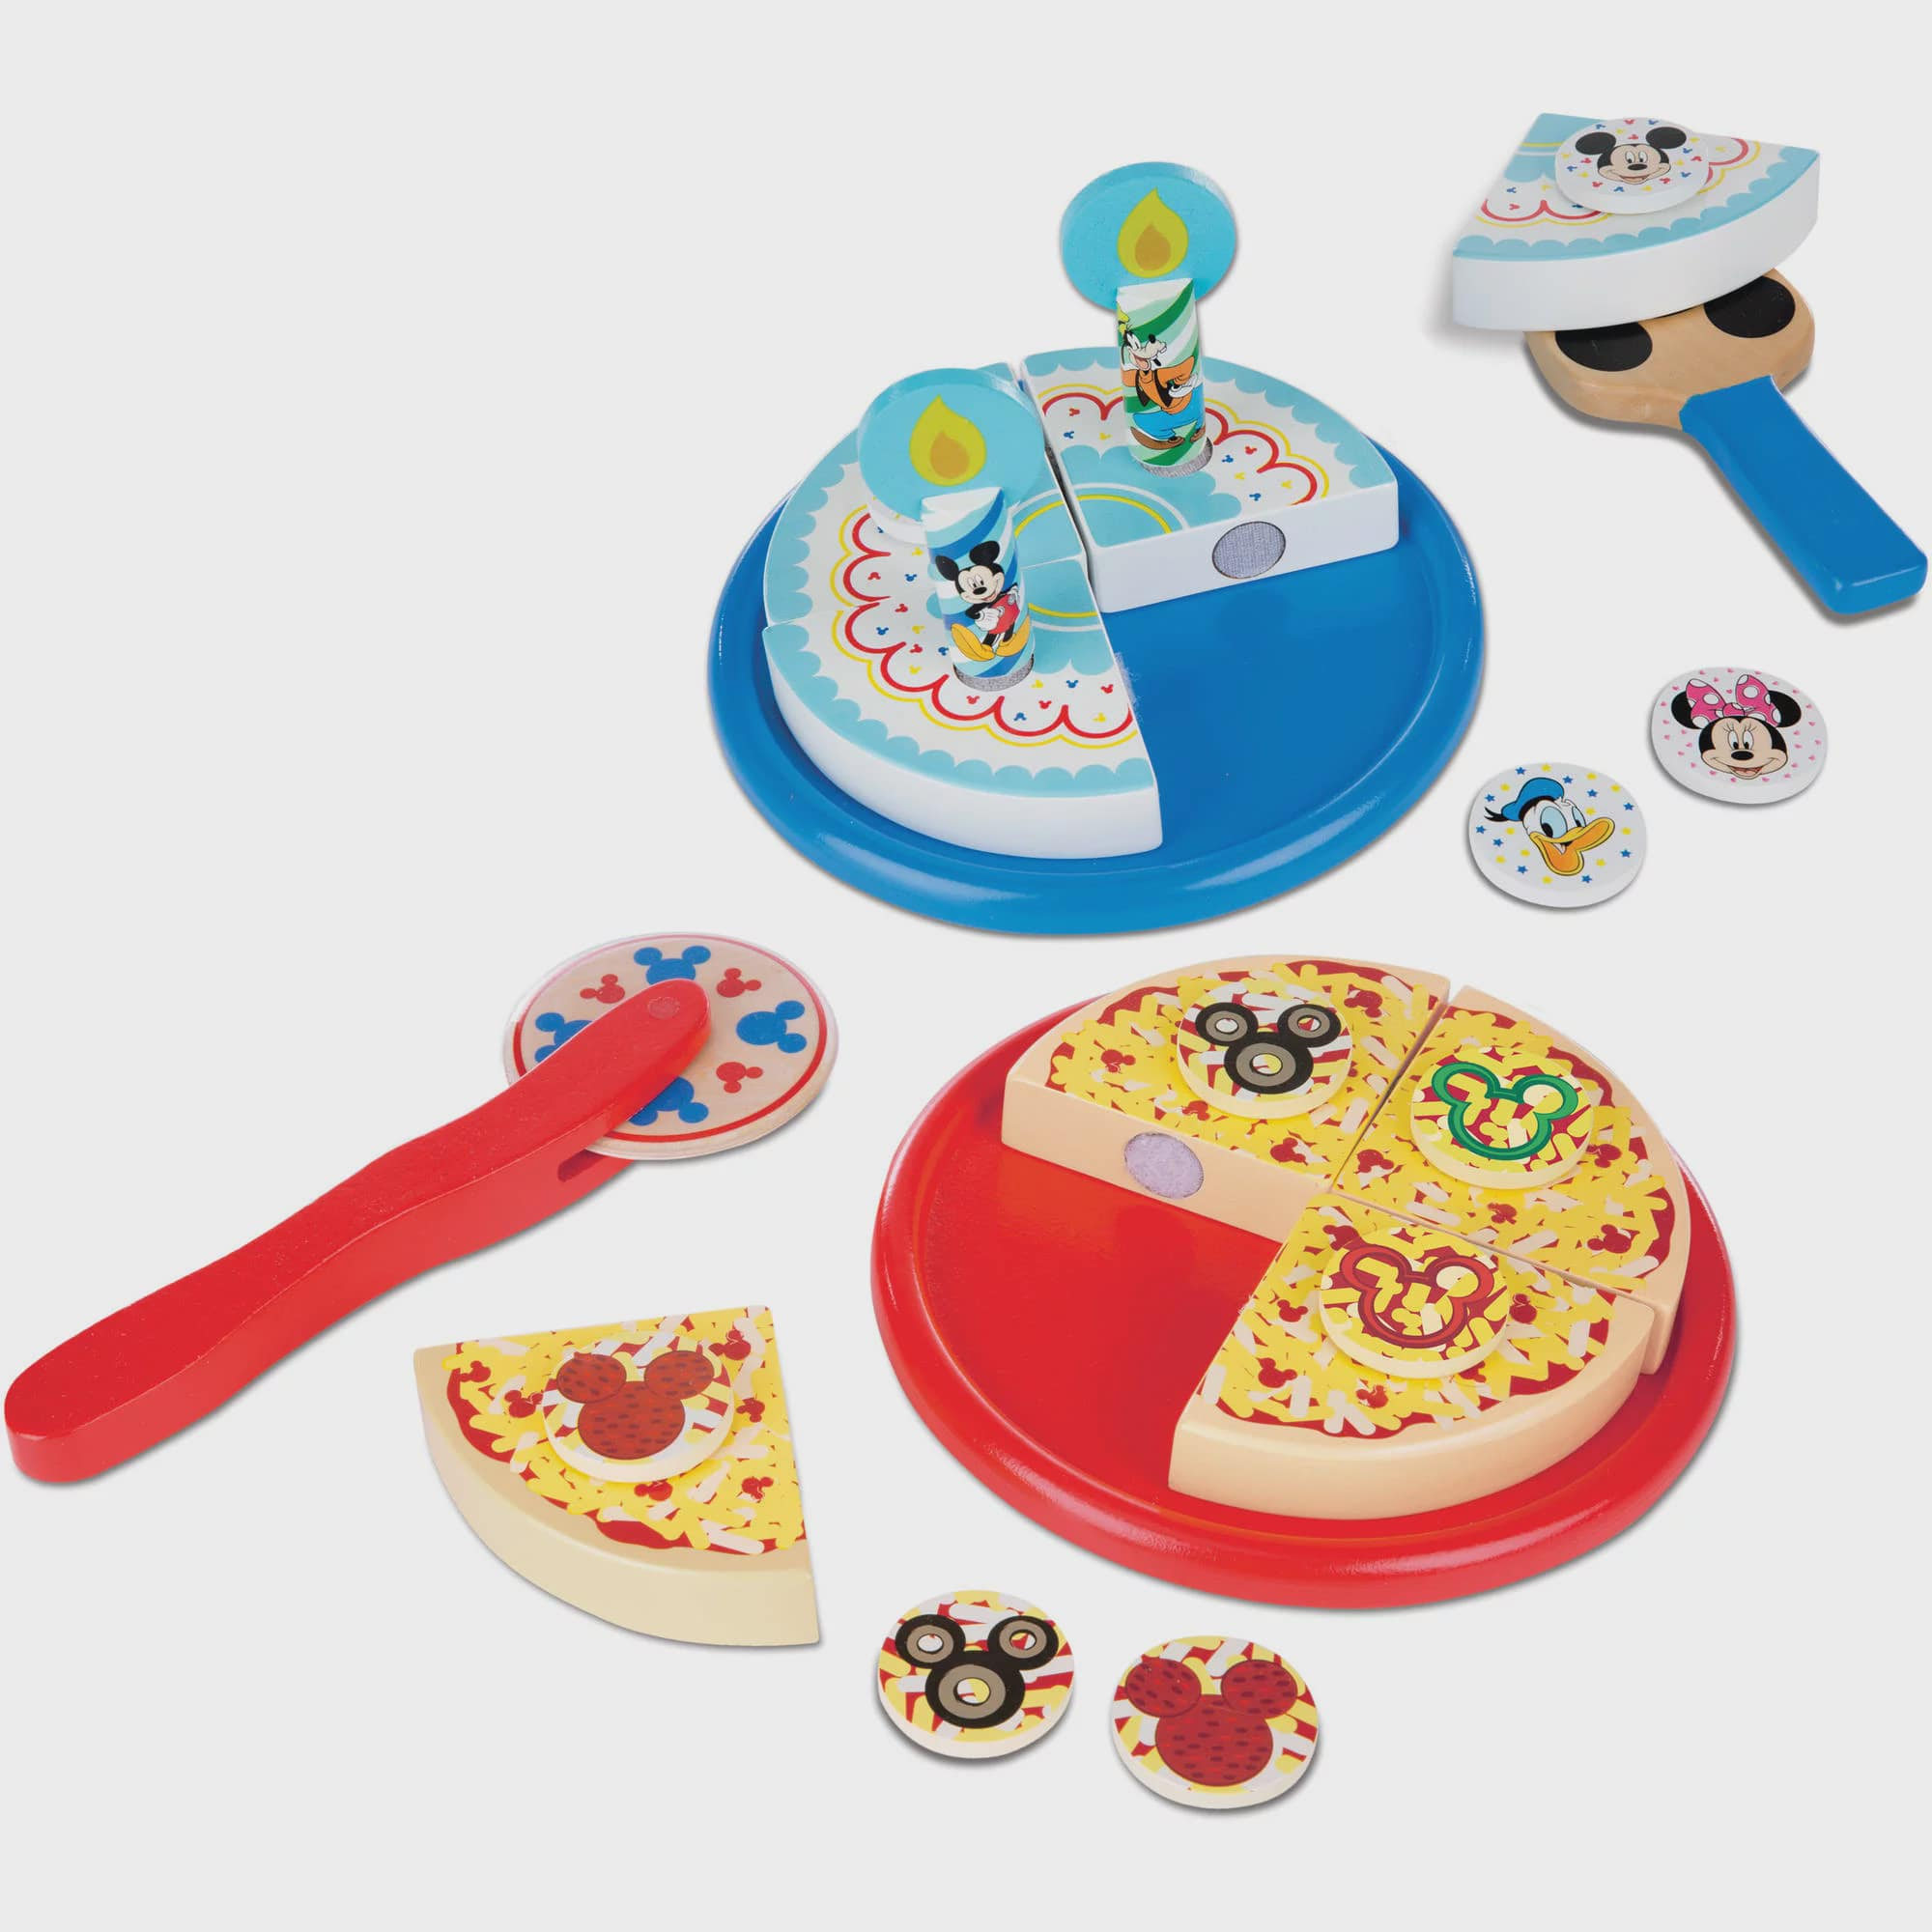 Astounding Melissa Doug Disney Mickey Mouse Wooden Pizza And Birthday Cake Personalised Birthday Cards Bromeletsinfo